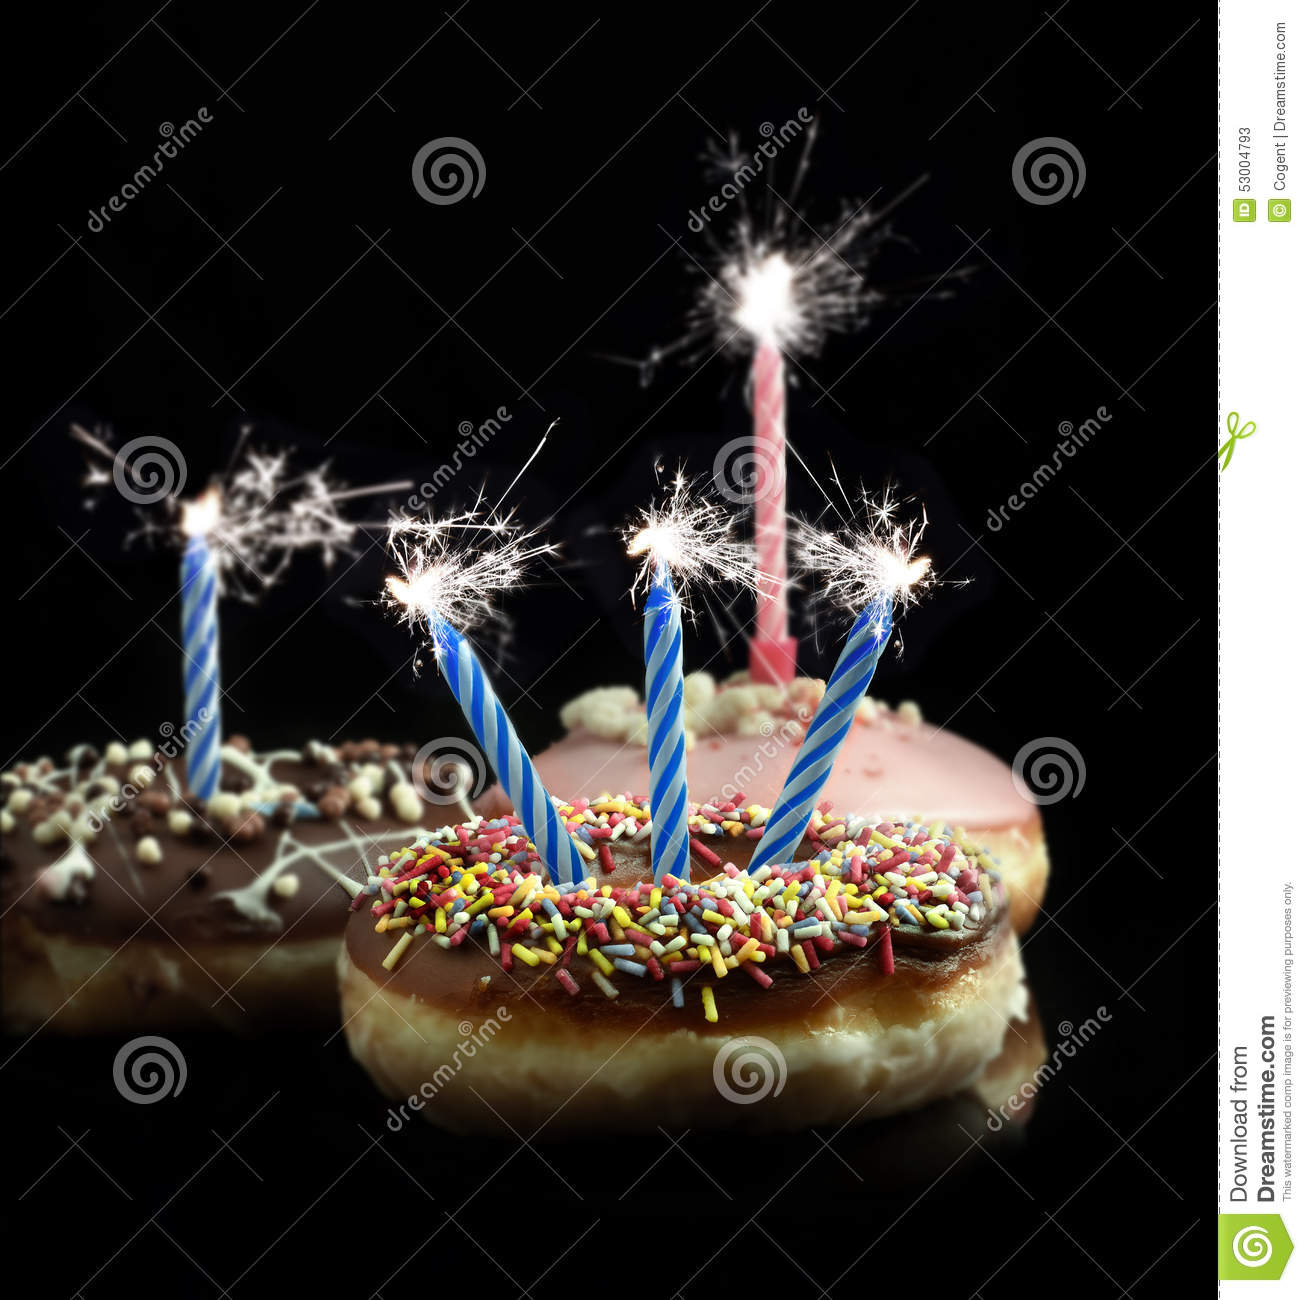 Image Of Delicious Donuts With Blue And Pink Candle Sparklers Against A Black Background Copy Space Concept For Celebrations Or Birthdays